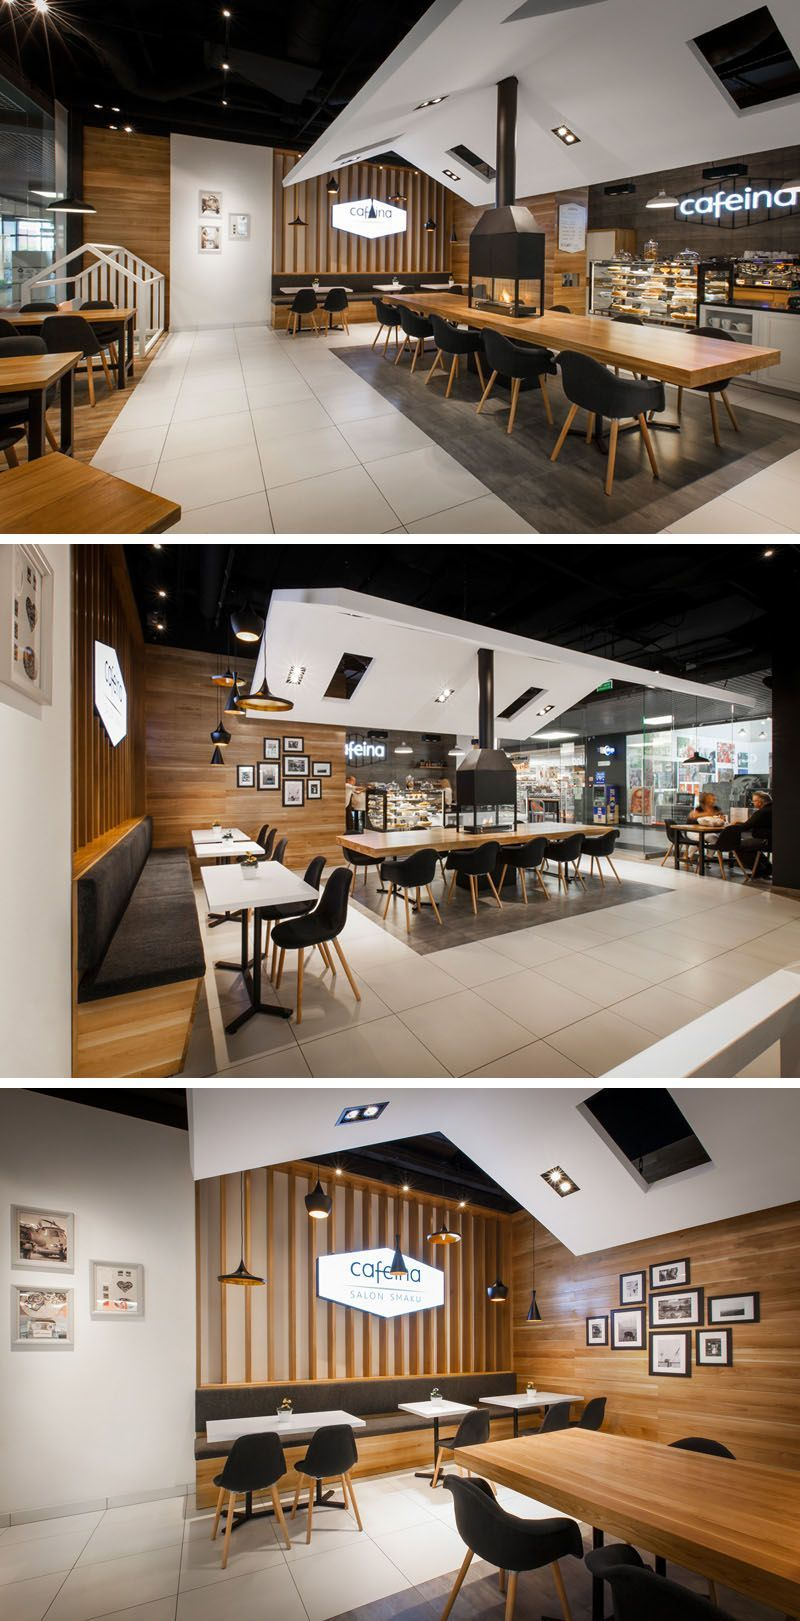 This cafe has a modern style and a cozy feel thanks to the centrally ...